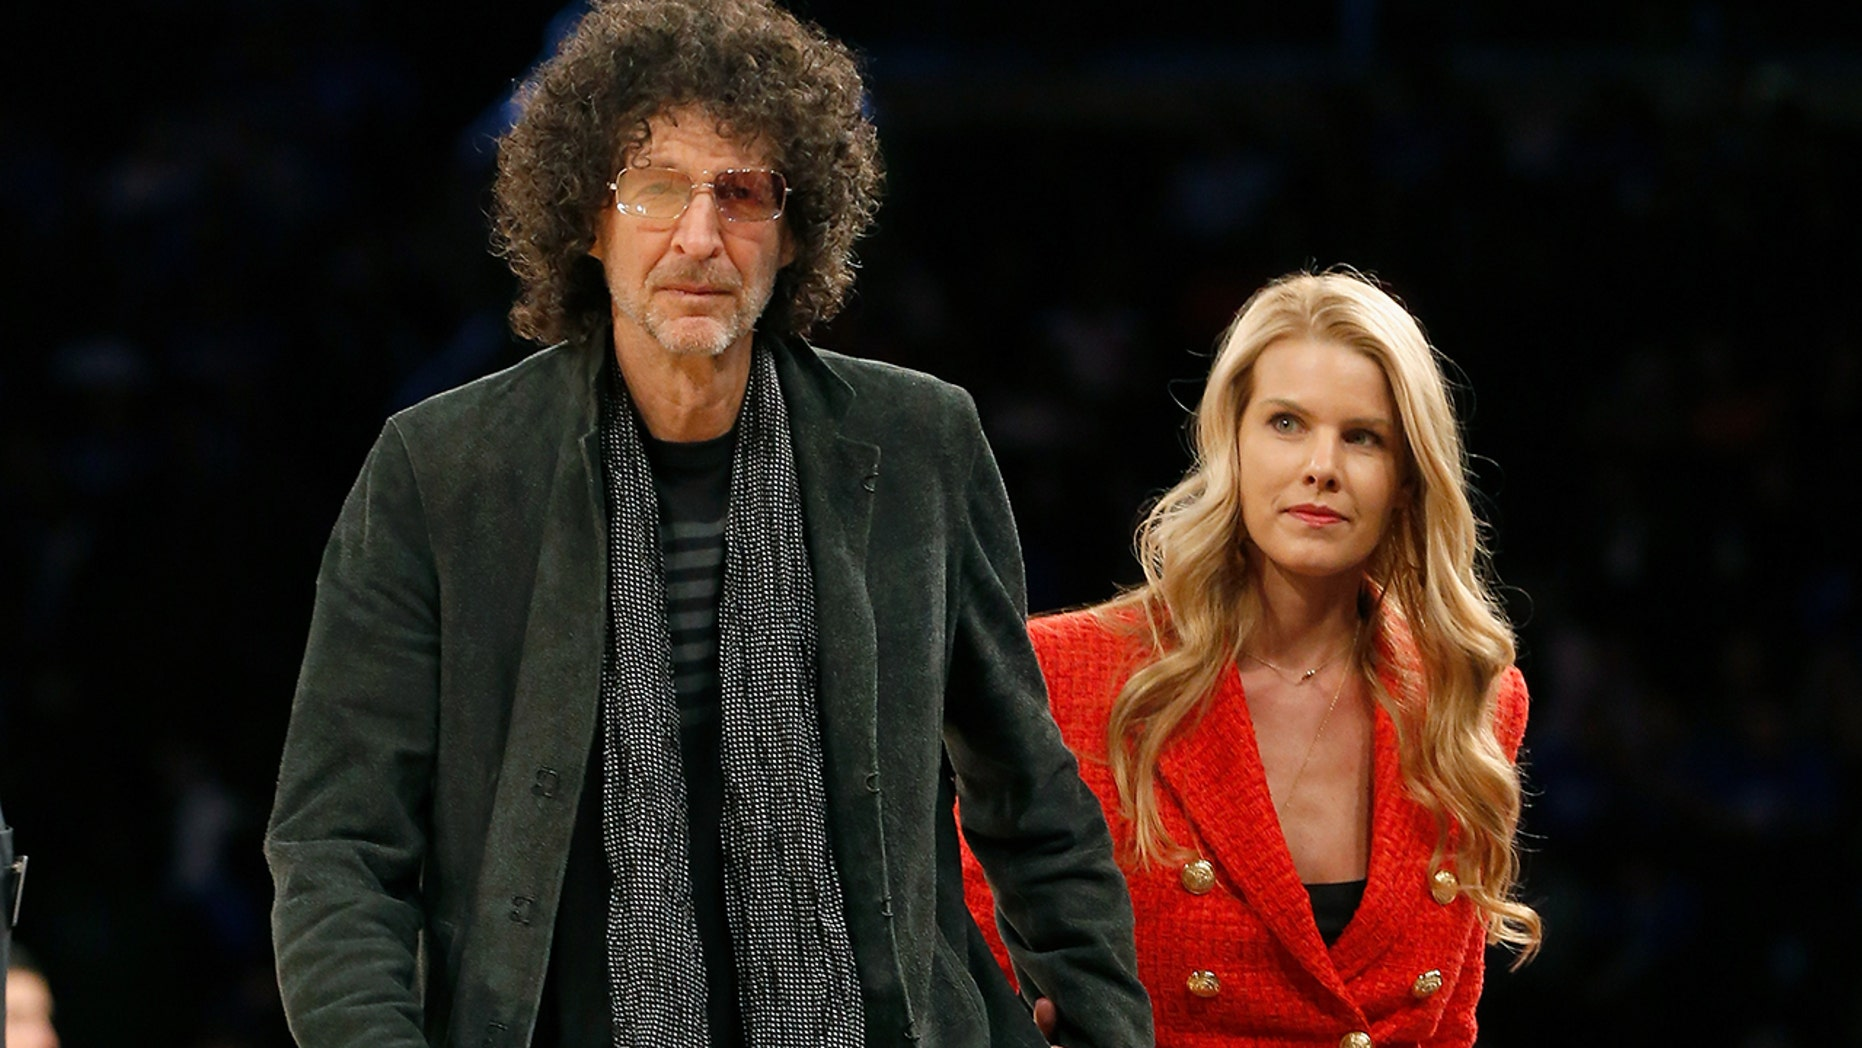 Howard Stern's wife Beth was mocked on social media for her smiling tribute to Pittsburgh after the shooting. (Photo by Jim McIsaac/Getty Images)